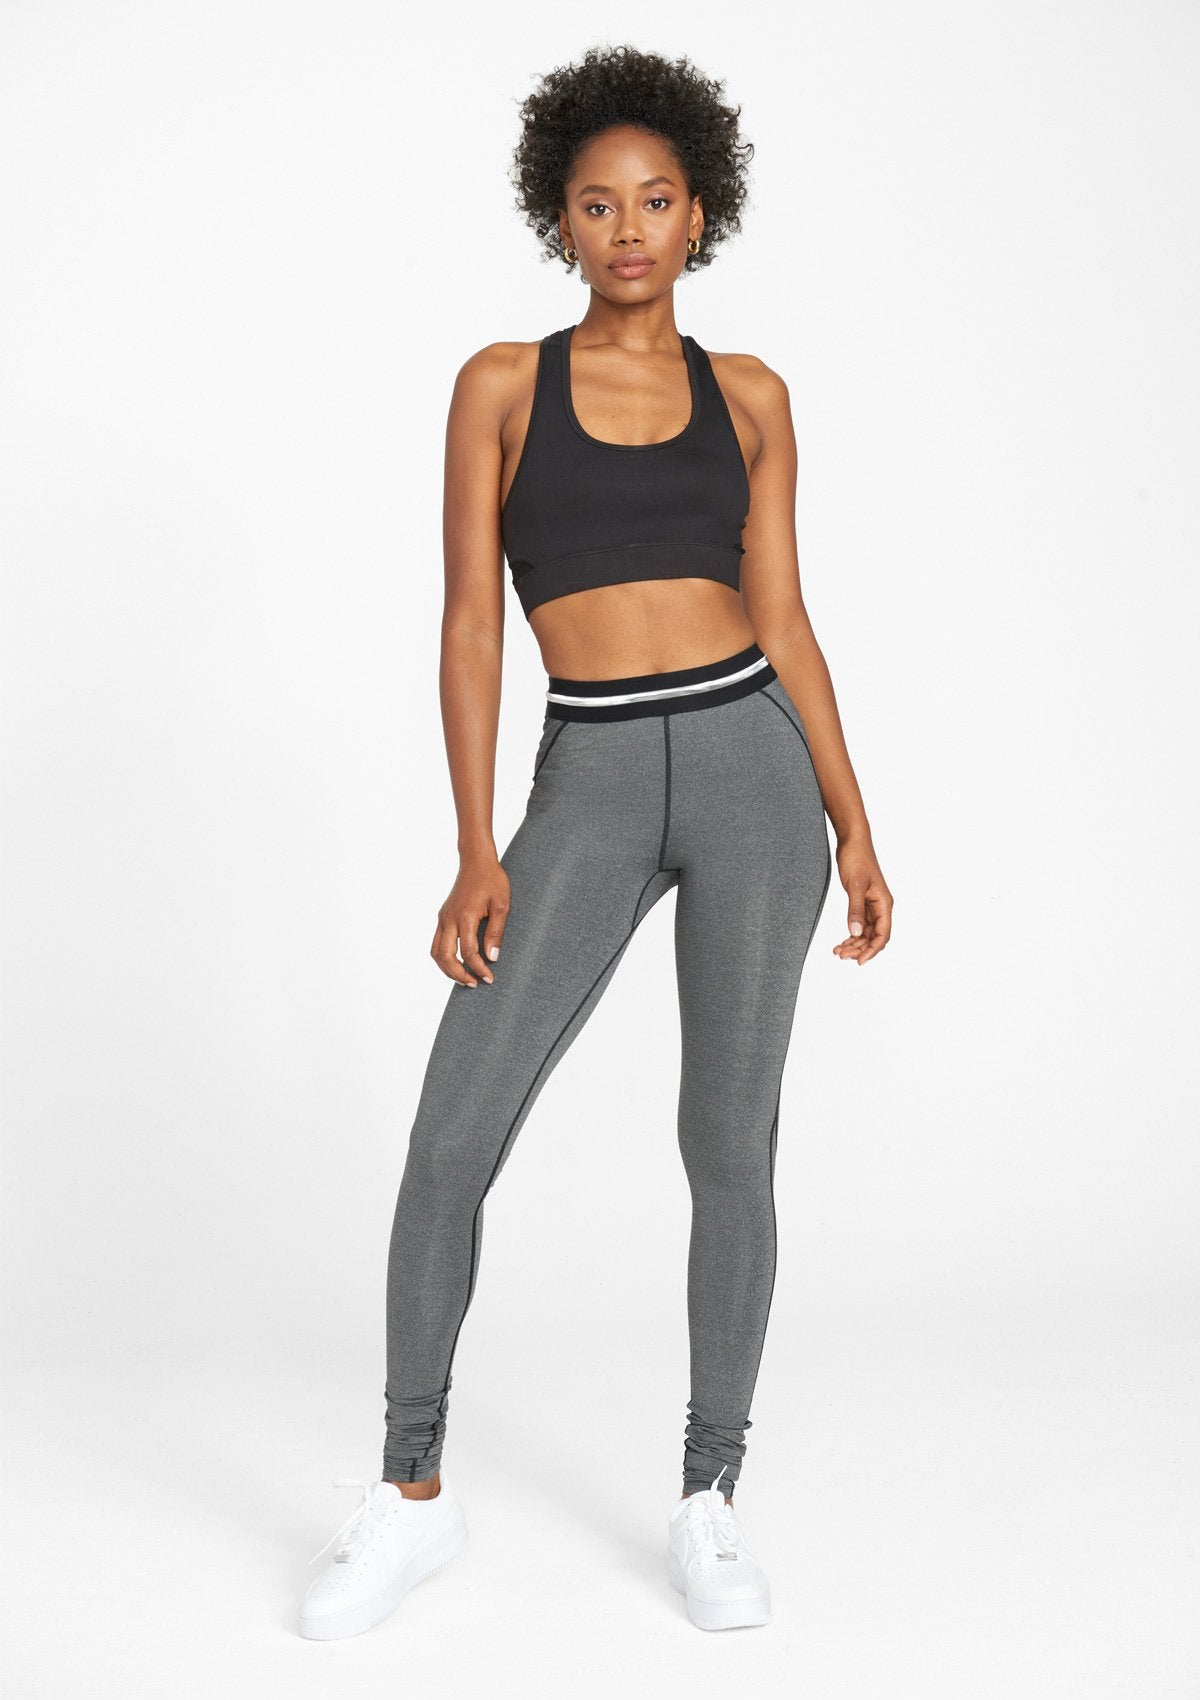 Alloy Apparel Tall Active Leggings for Women in Heather Grey Size M length 36   Polyester